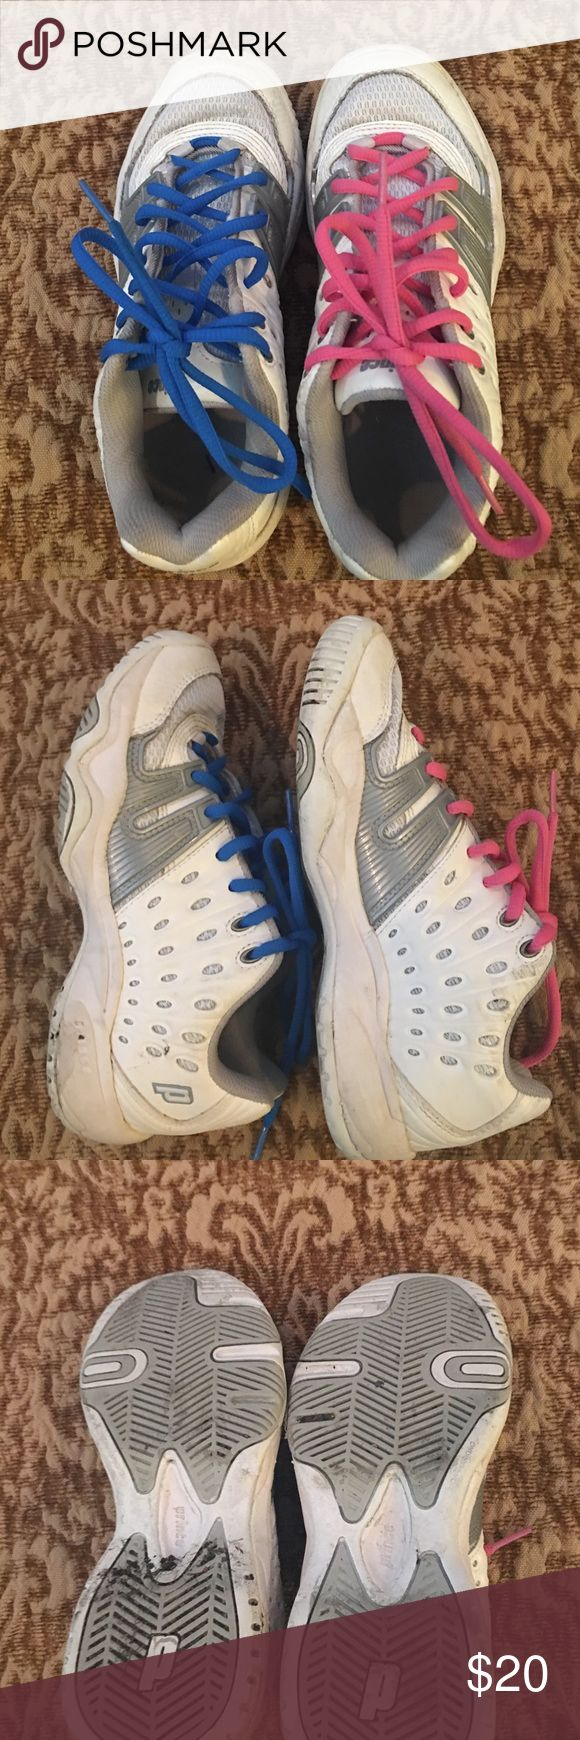 Prince girls tennis shoes Worn one month at camp last summer Prince Shoes Sneakers